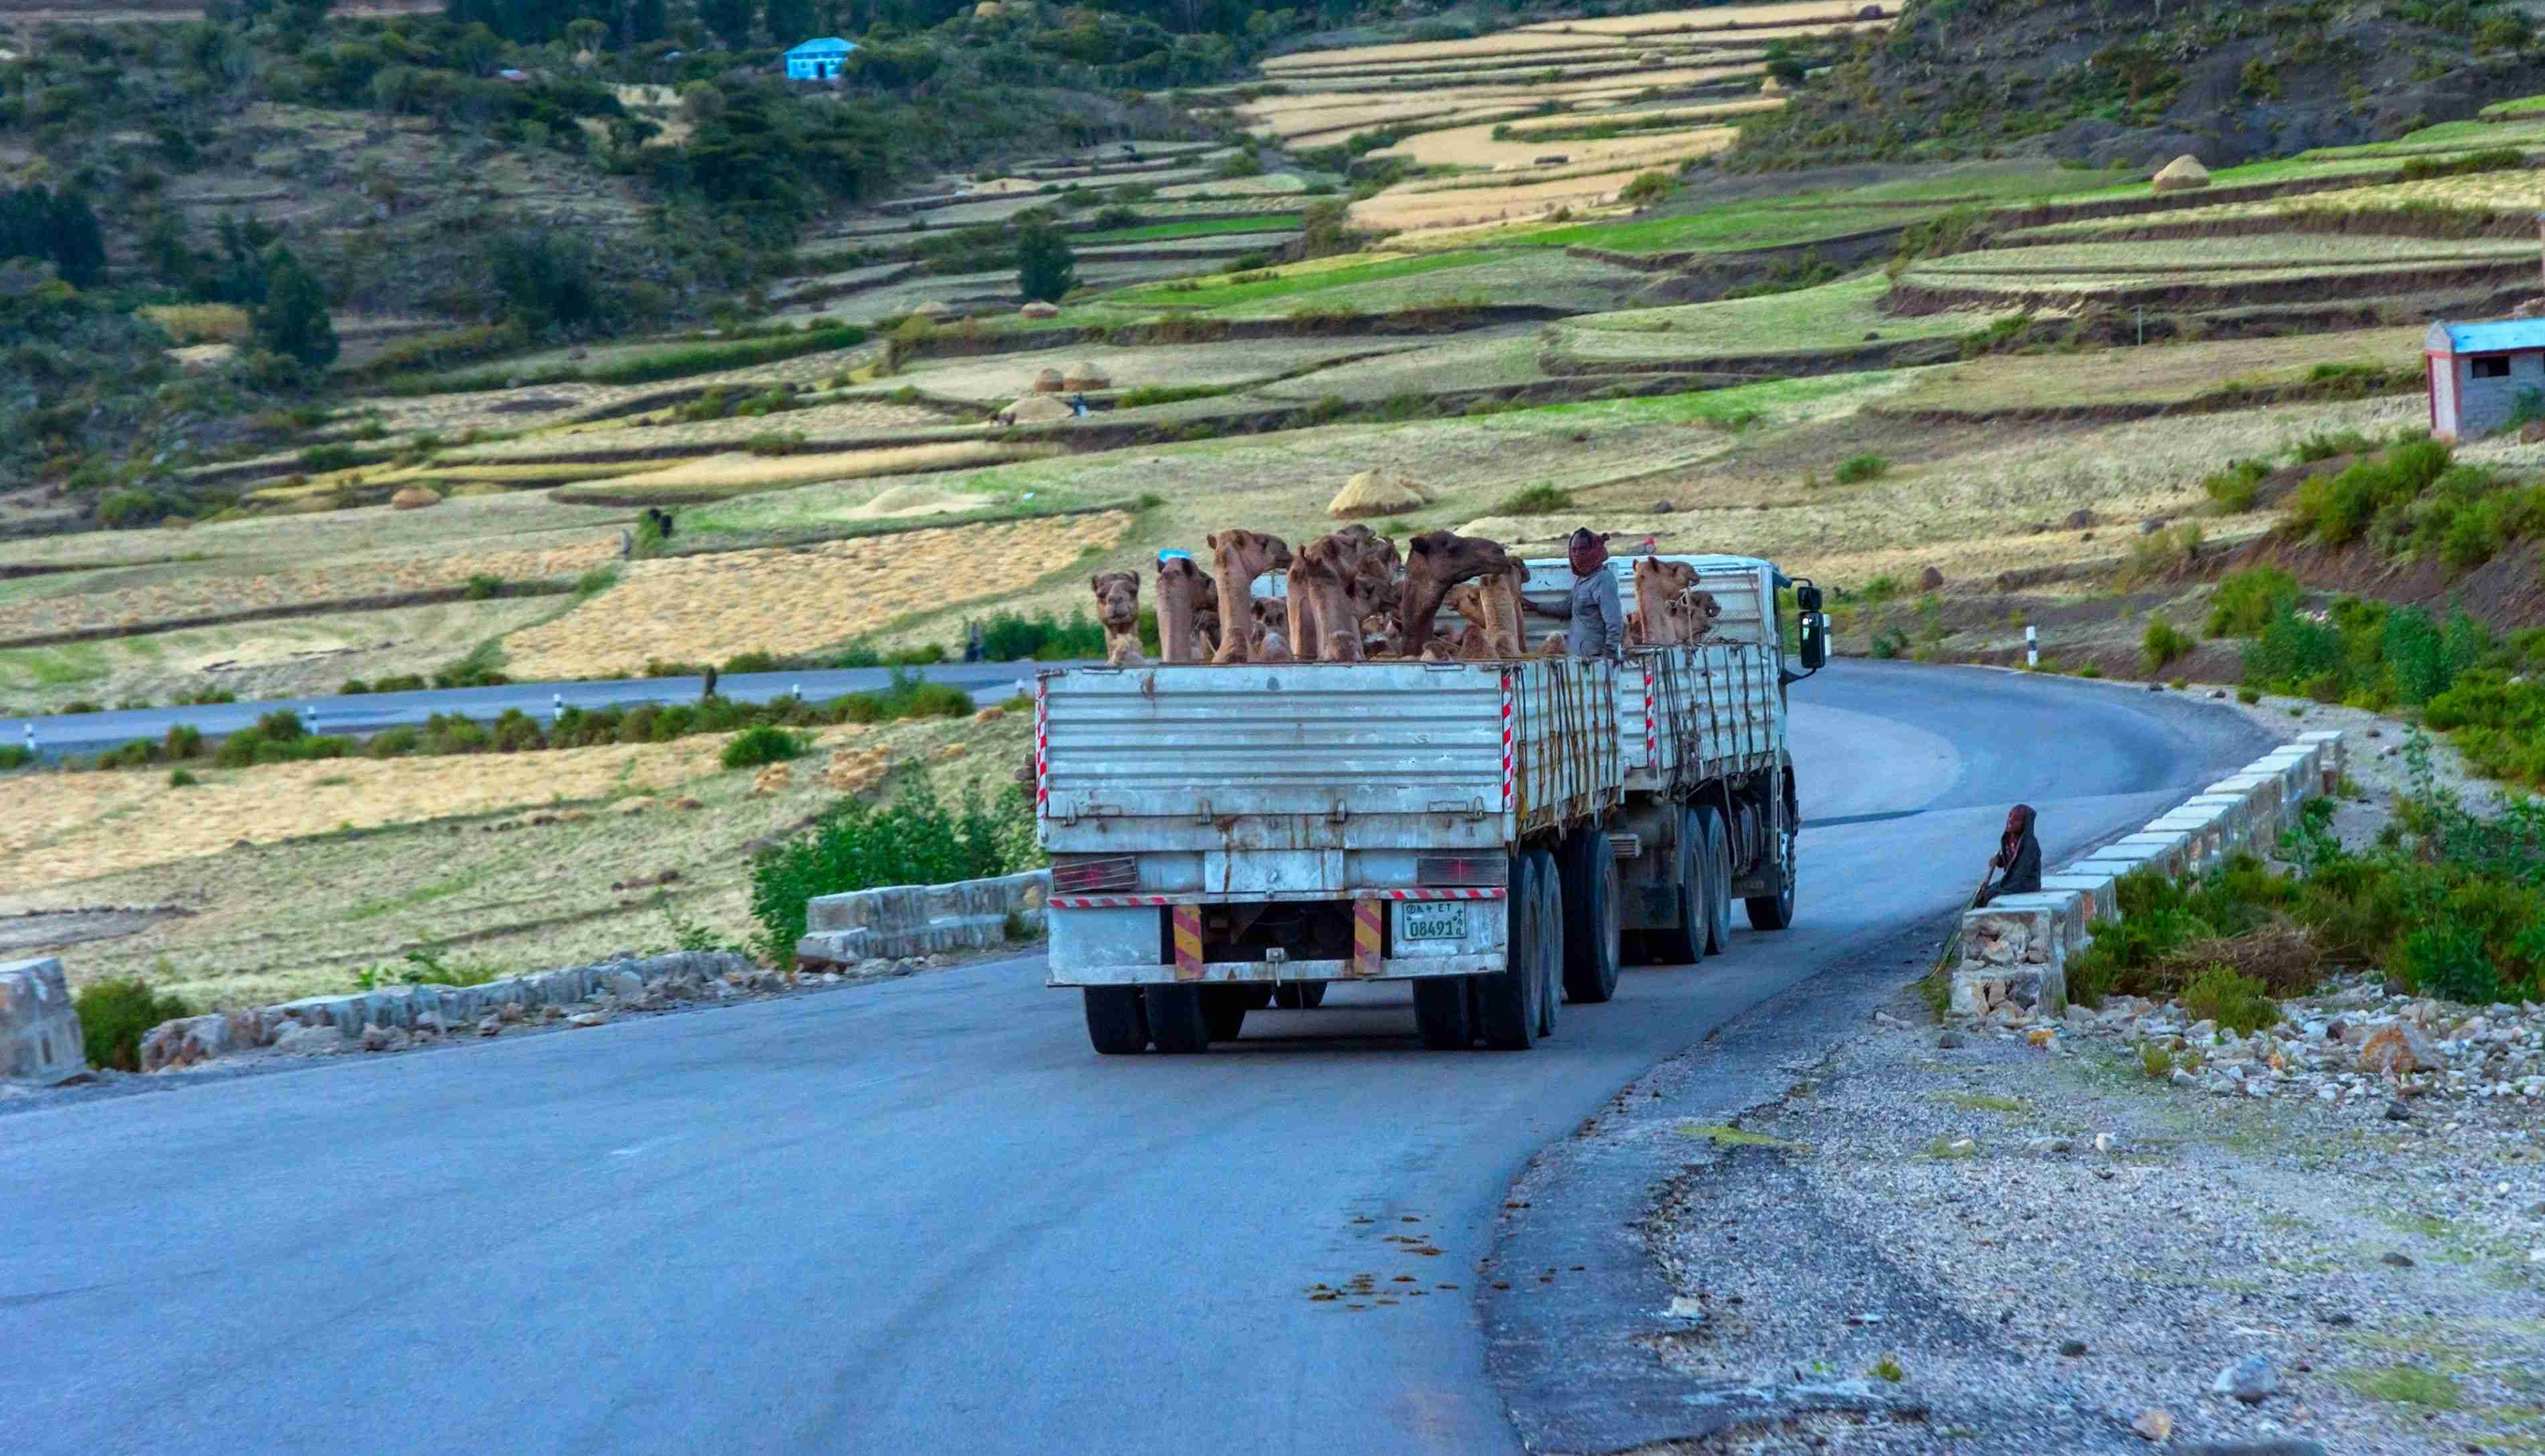 Mekele, Ethiopia - Nov 2018: Truck full of camels to be transported on the road in Ethiopian countryside